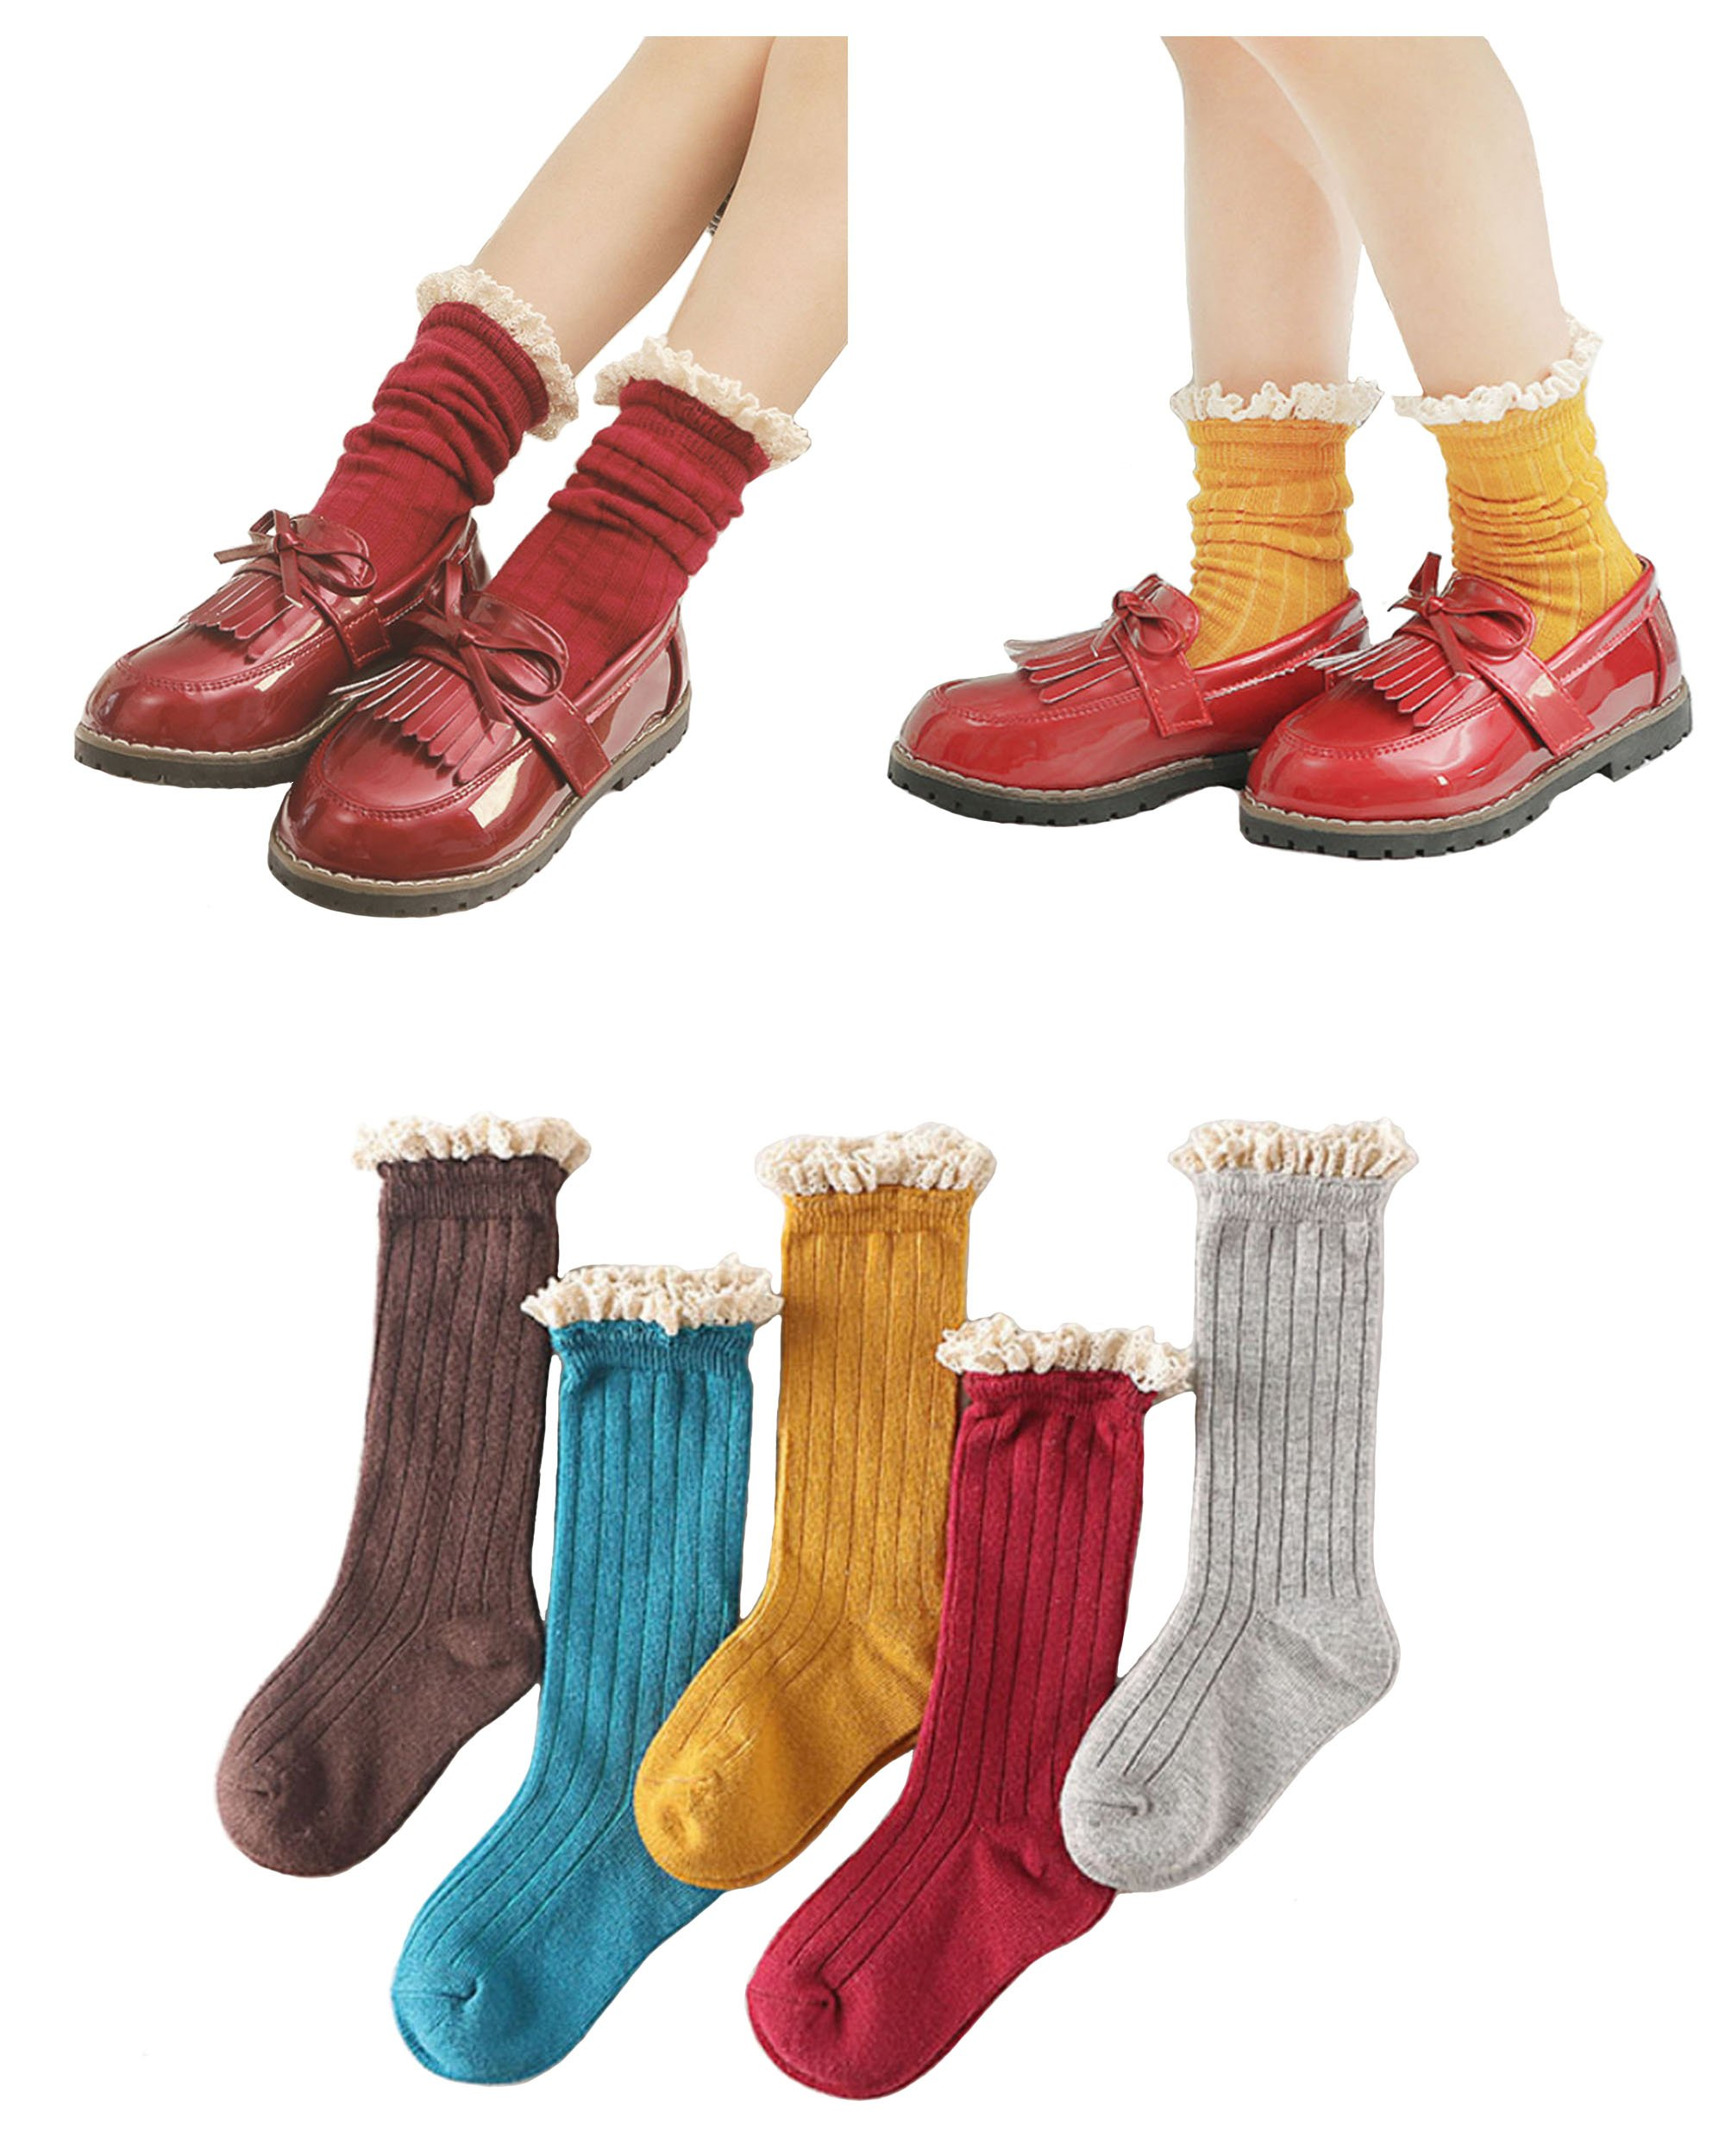 5 Pack Girls Sweet Socks Lace Trim Cotton Knit Footed Leg Boot Stocking By Eilin (3-5 years)